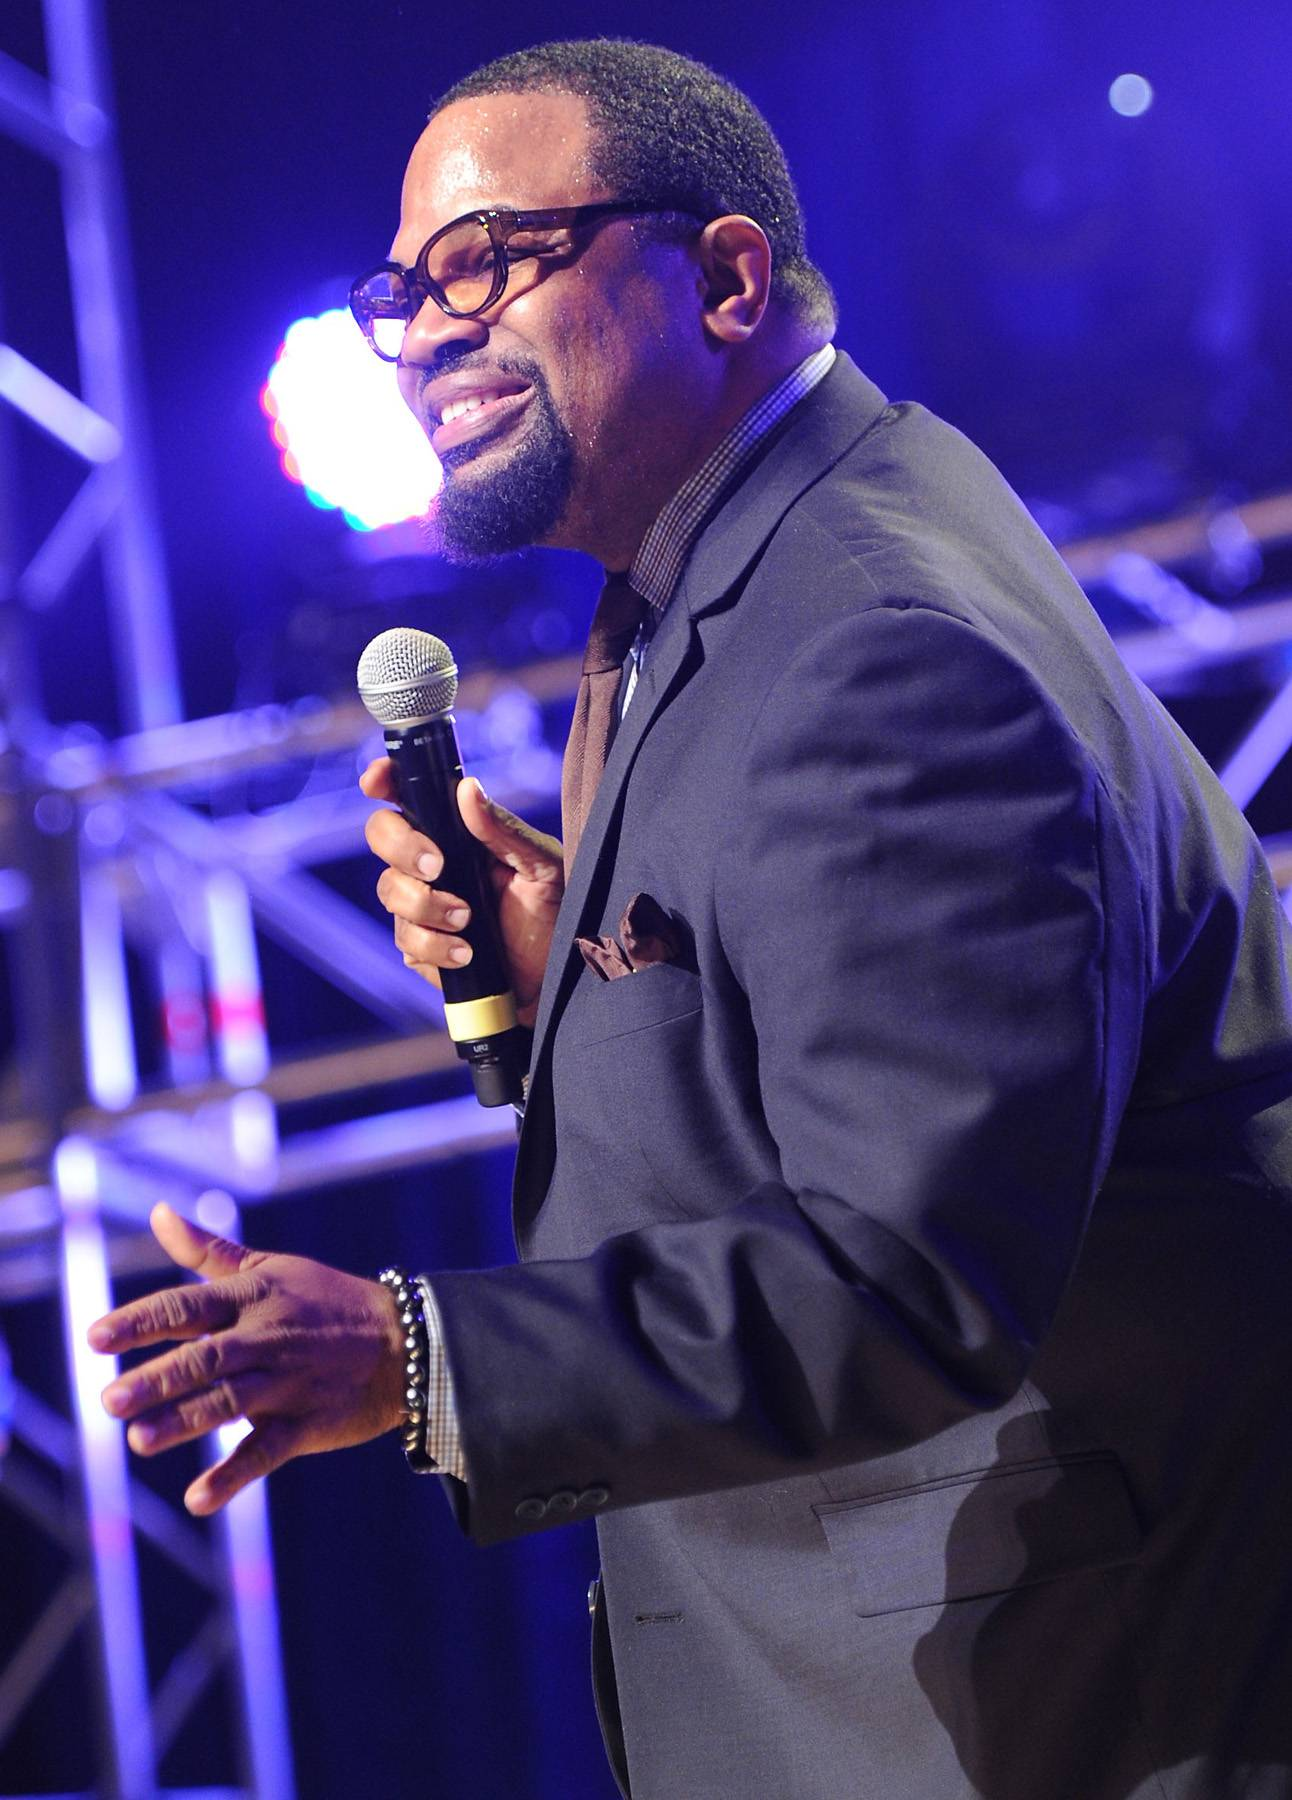 """Best Gospel/Inspirational Performance: Bishop Hezekiah Walker - """"Every Praise"""" - Walker takes folks to church in this hand-clapping, foot-stomping track that reminds us to give thanks.(Photo: Rick Diamond/Getty Images for Super Bowl)"""